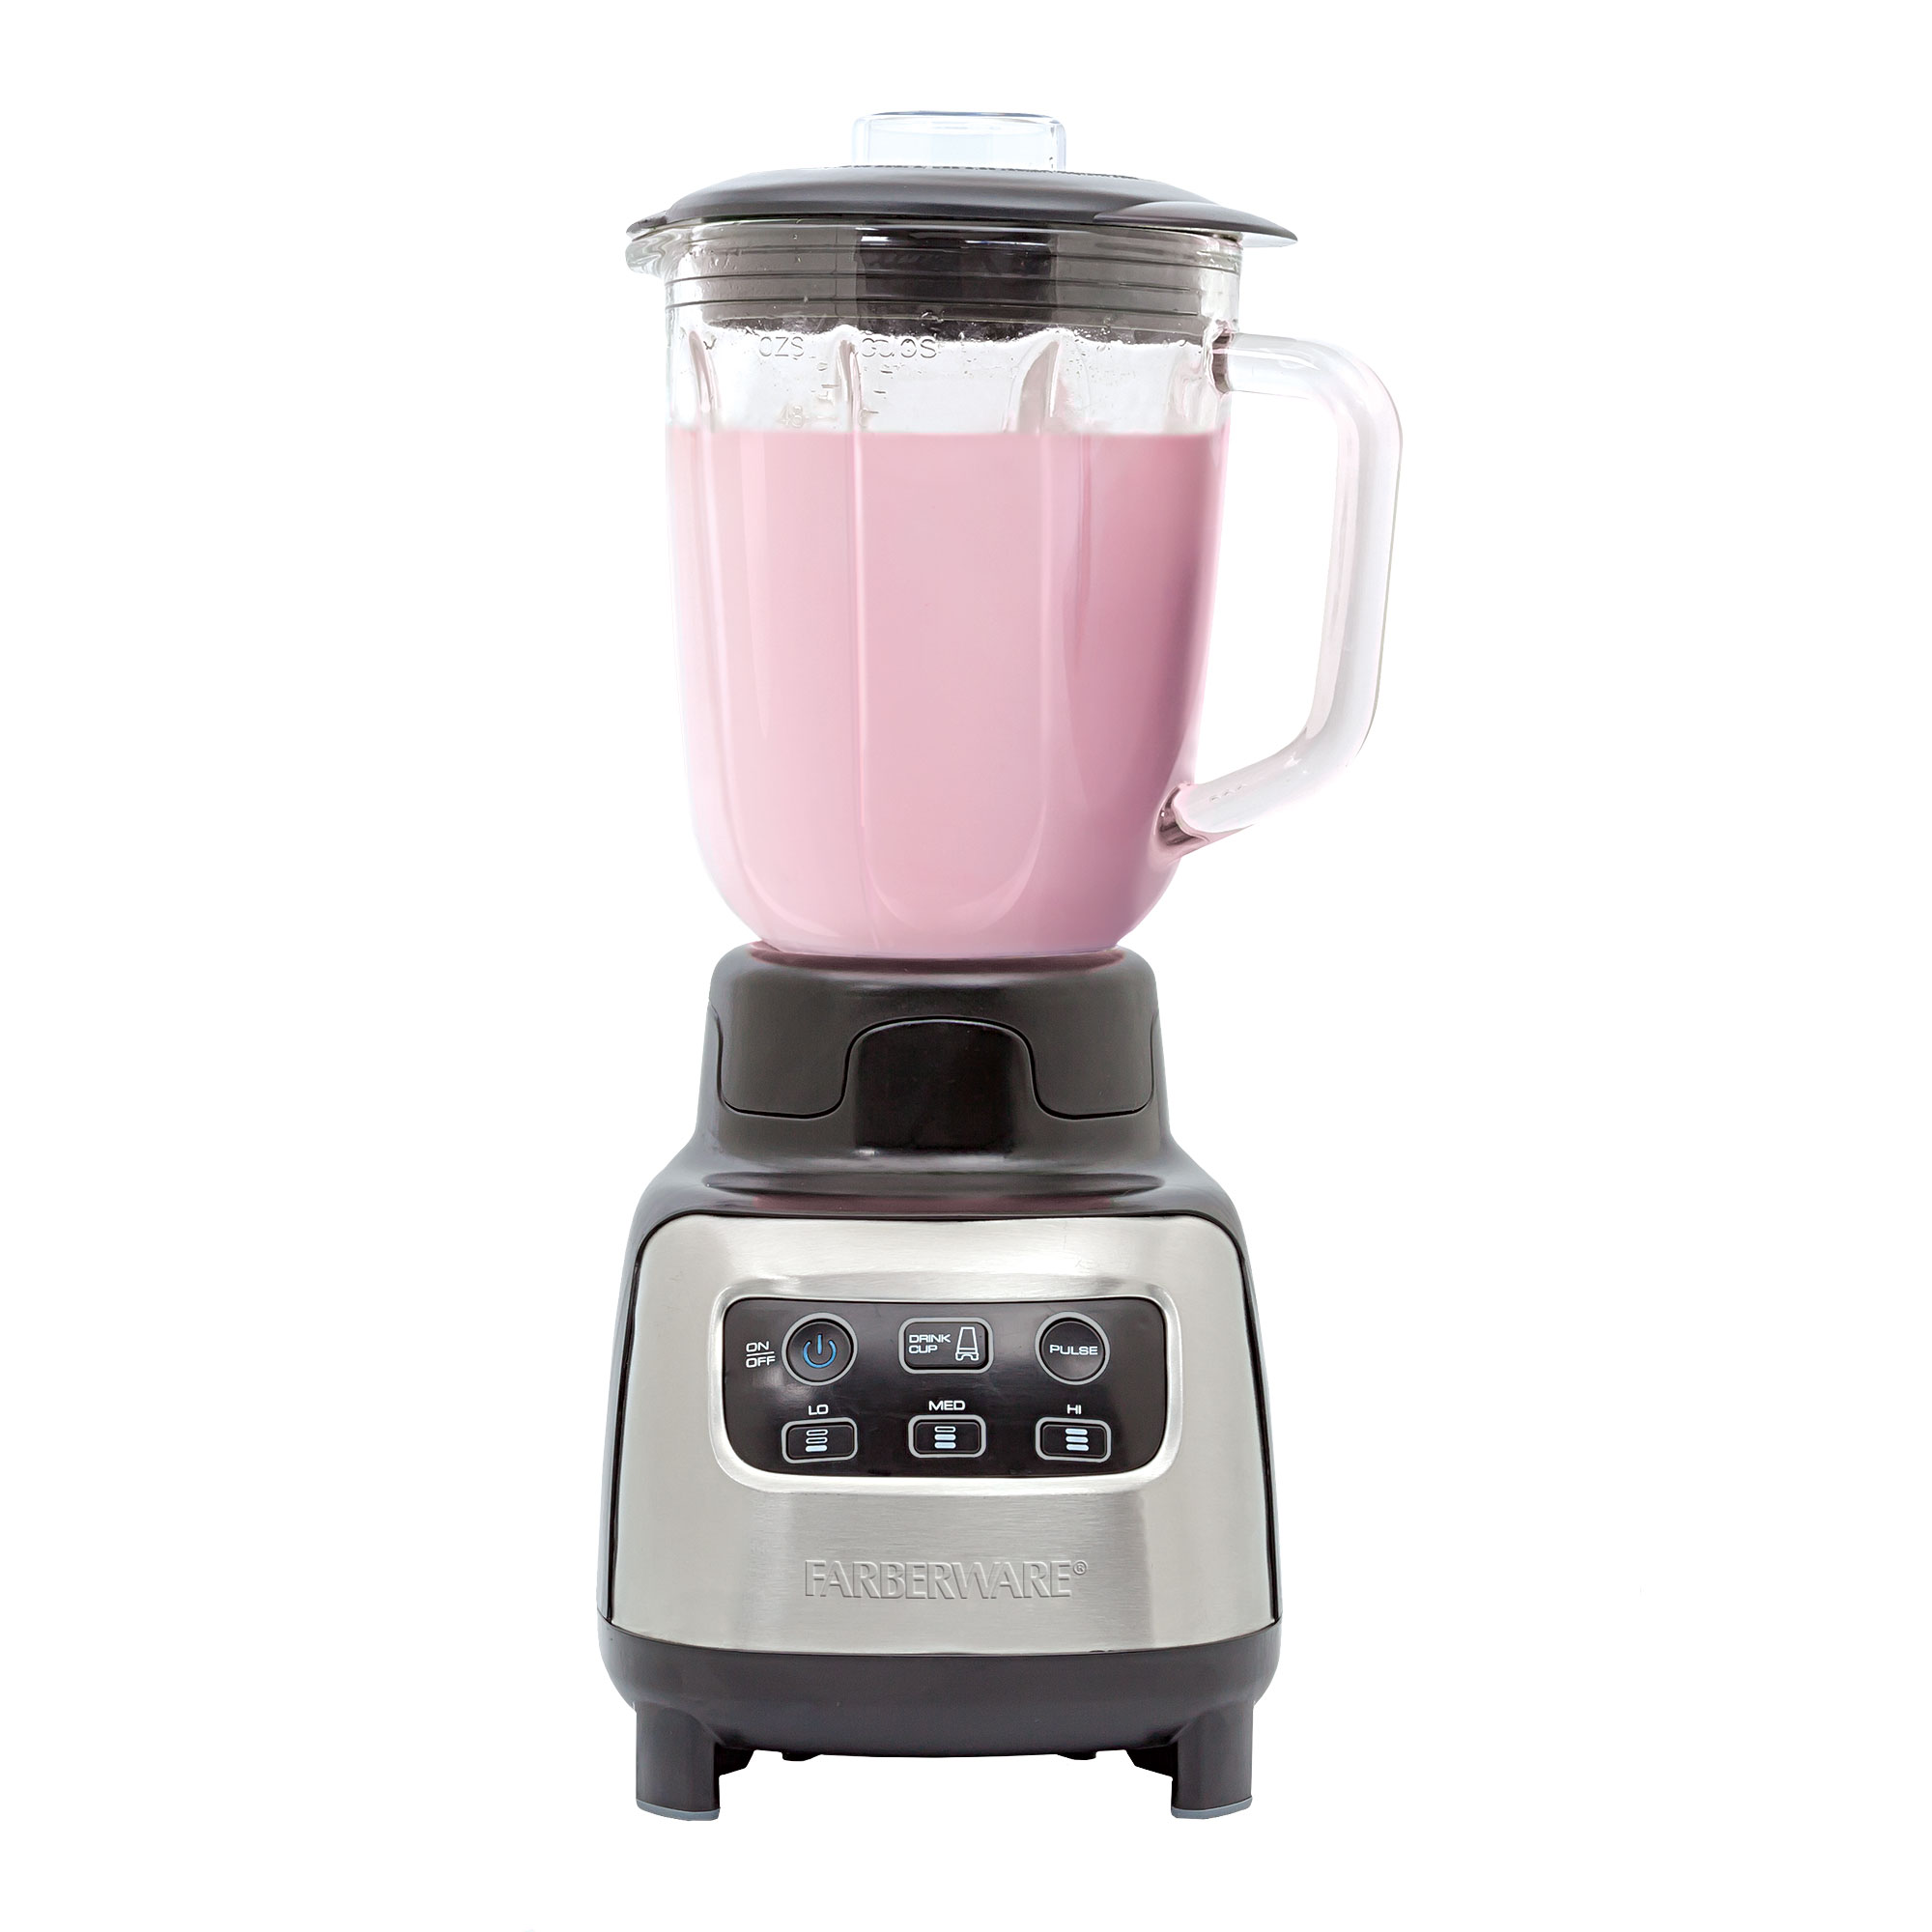 4 speed digital blender with single serve cup farberware rh farberwareproducts com Blender Software Manual Manual Blender Cup